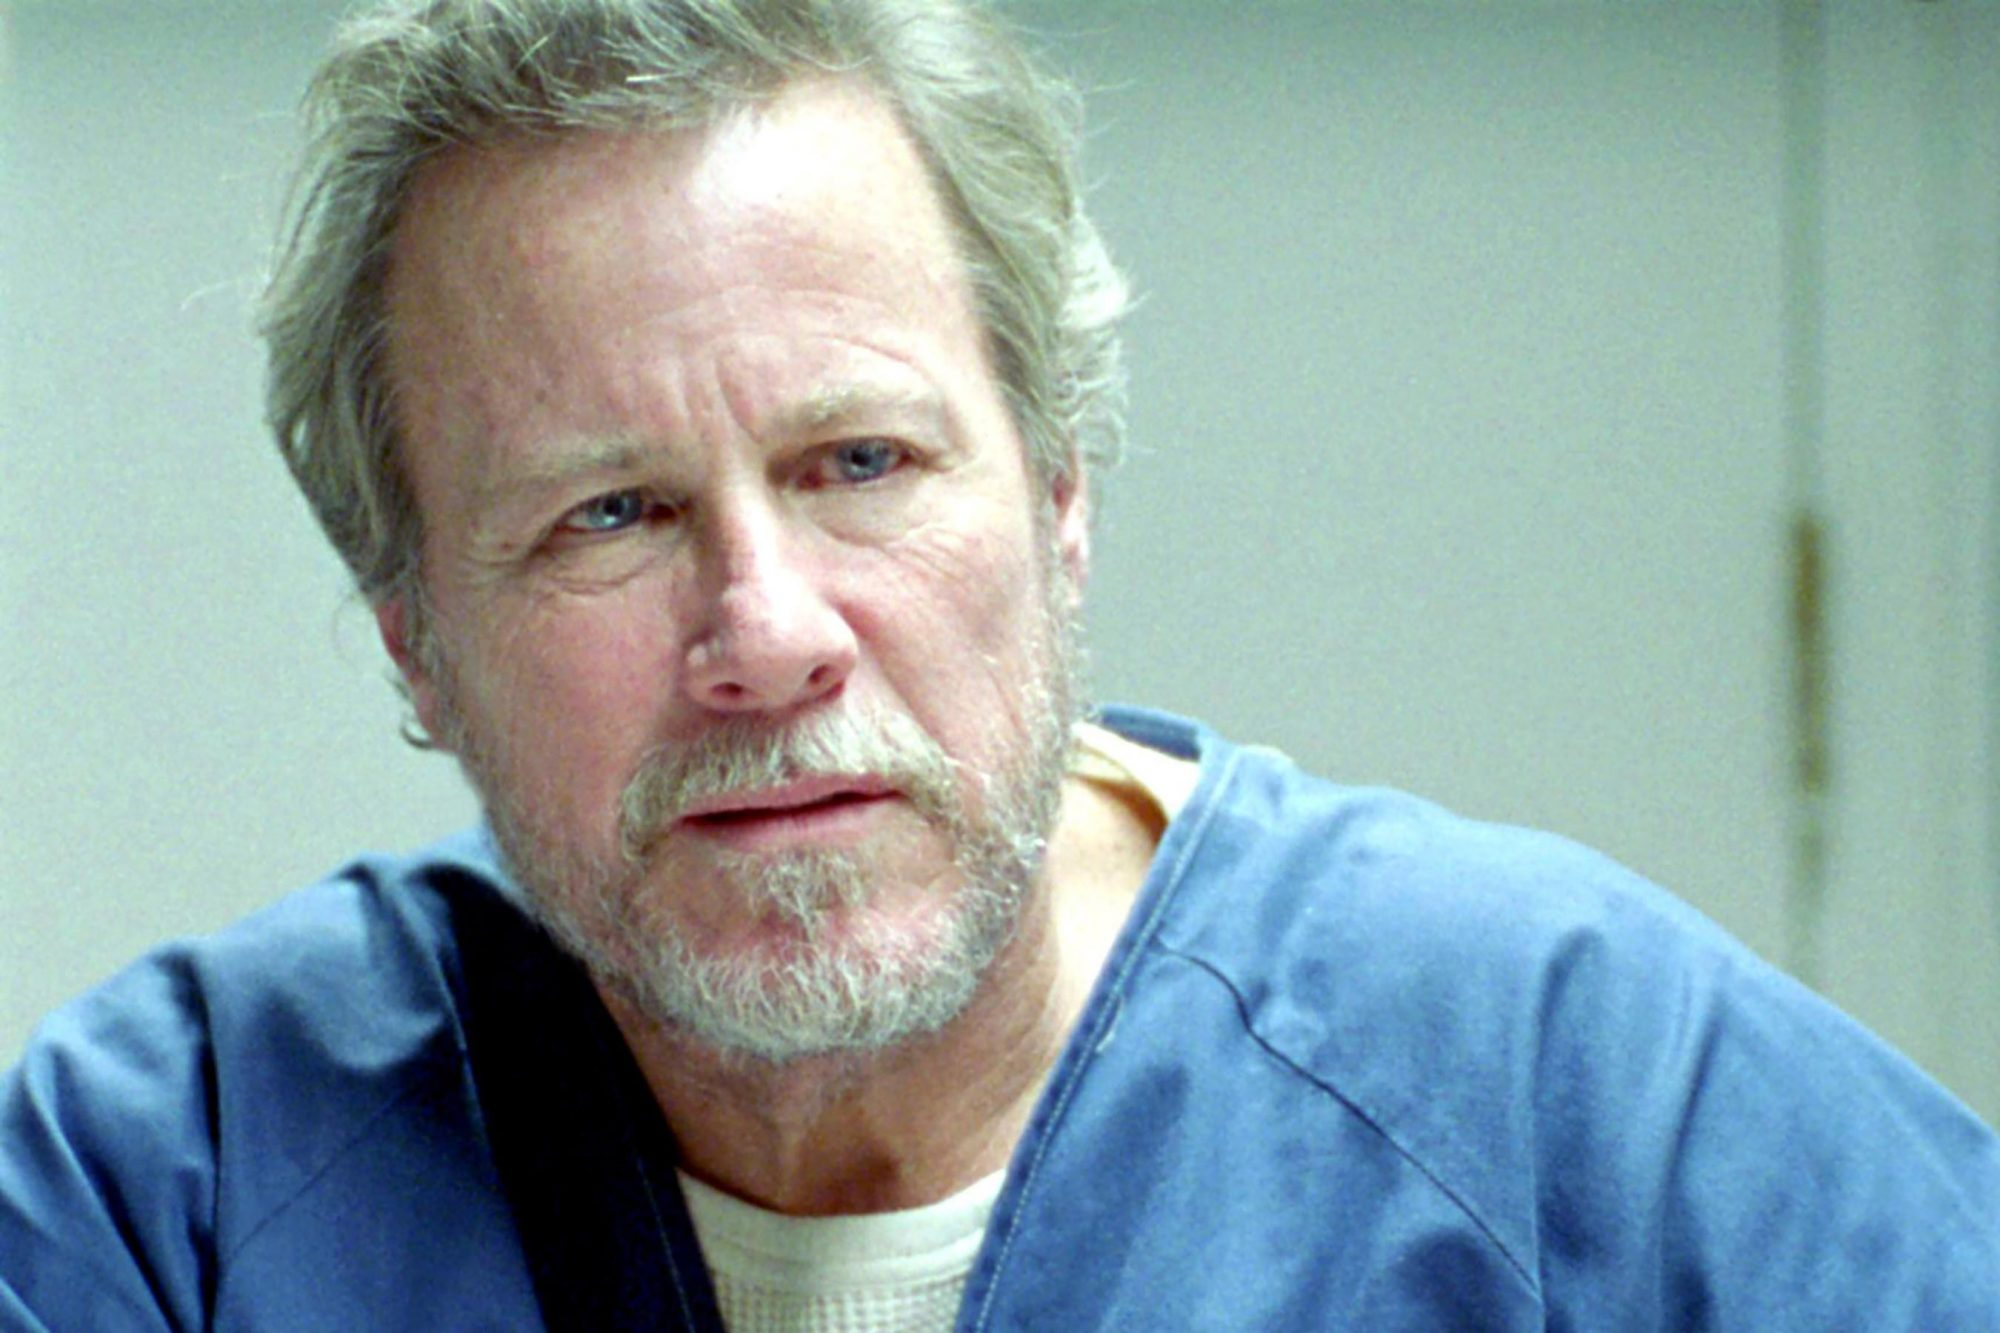 STEEL CITY, John Heard, 2006. ©Truly Indie/courtesy Everett Collection